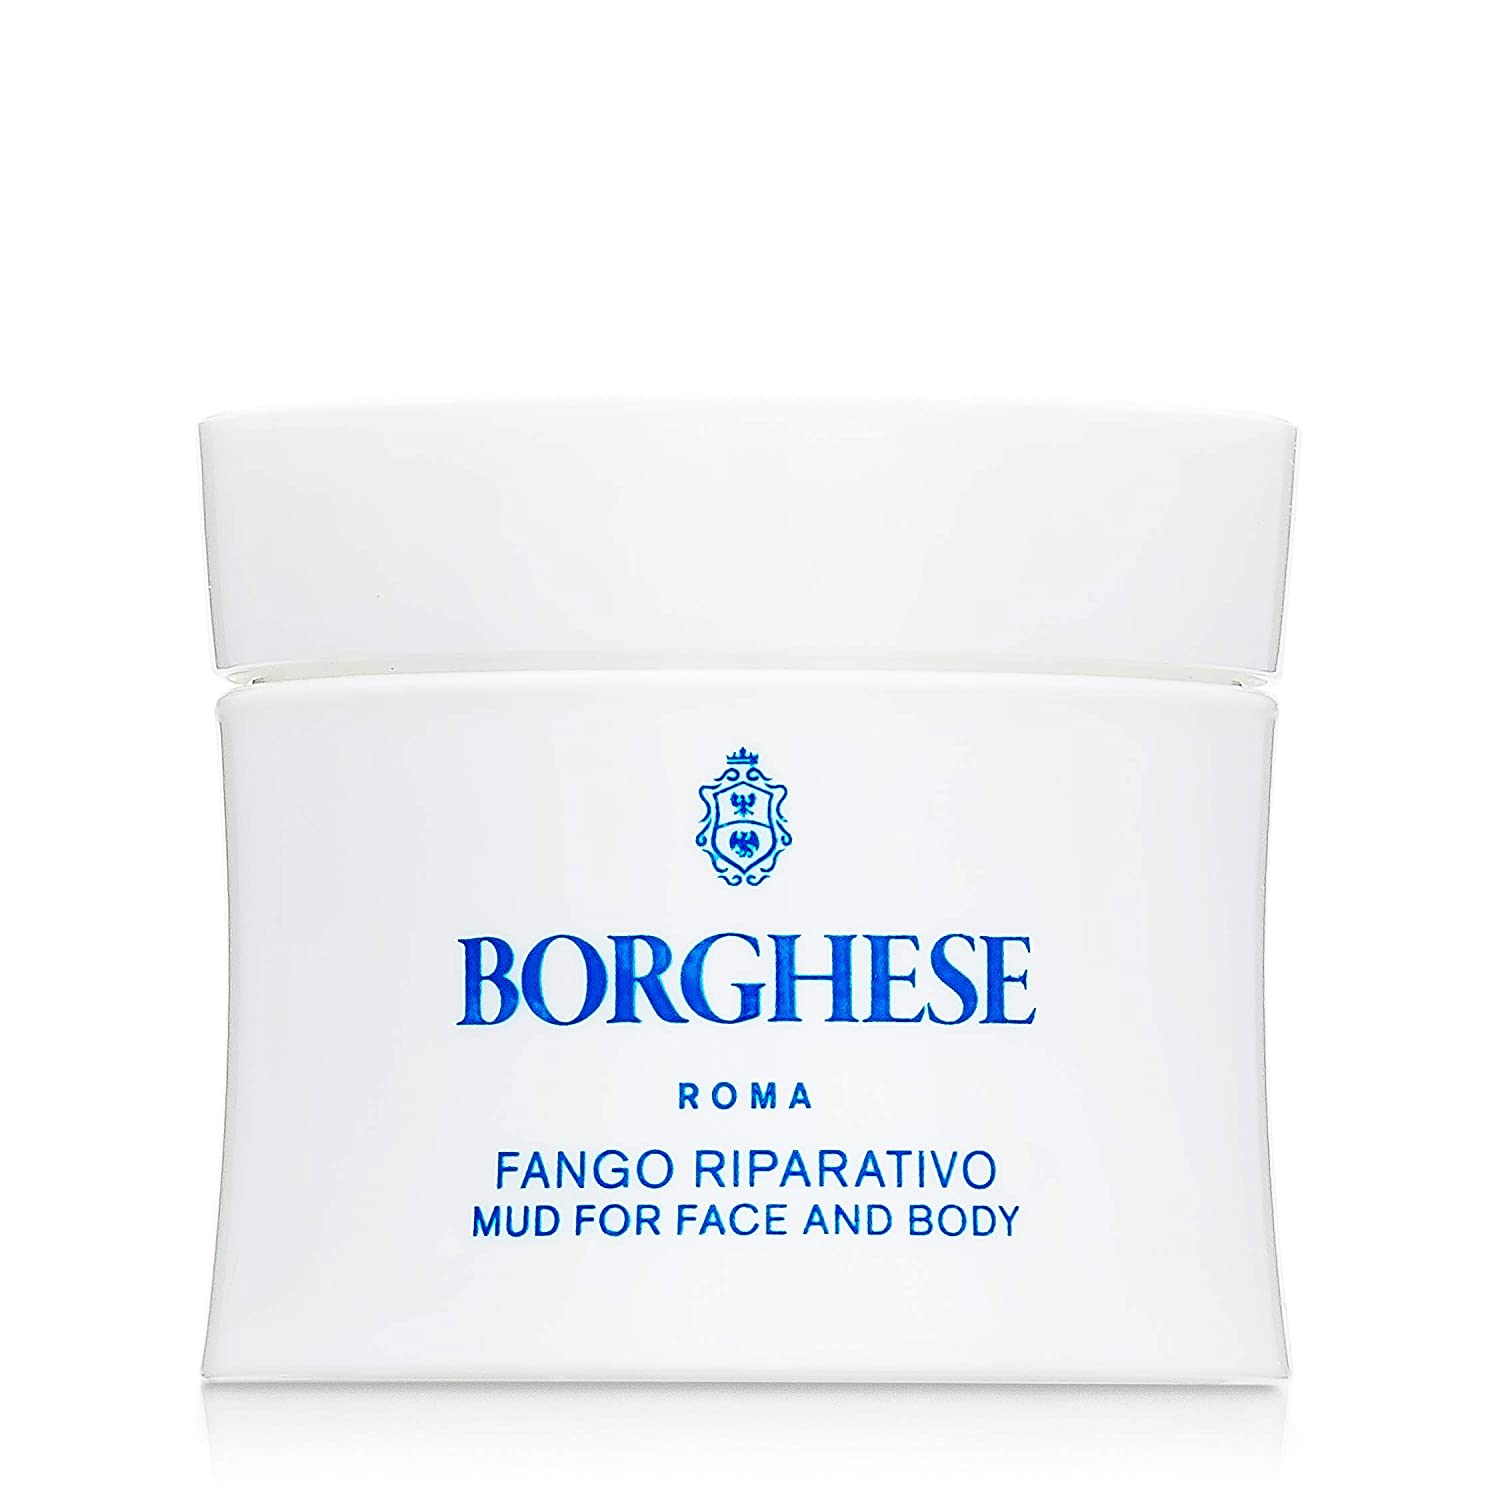 Borghese Fango Riparativo Mud for Face and Body